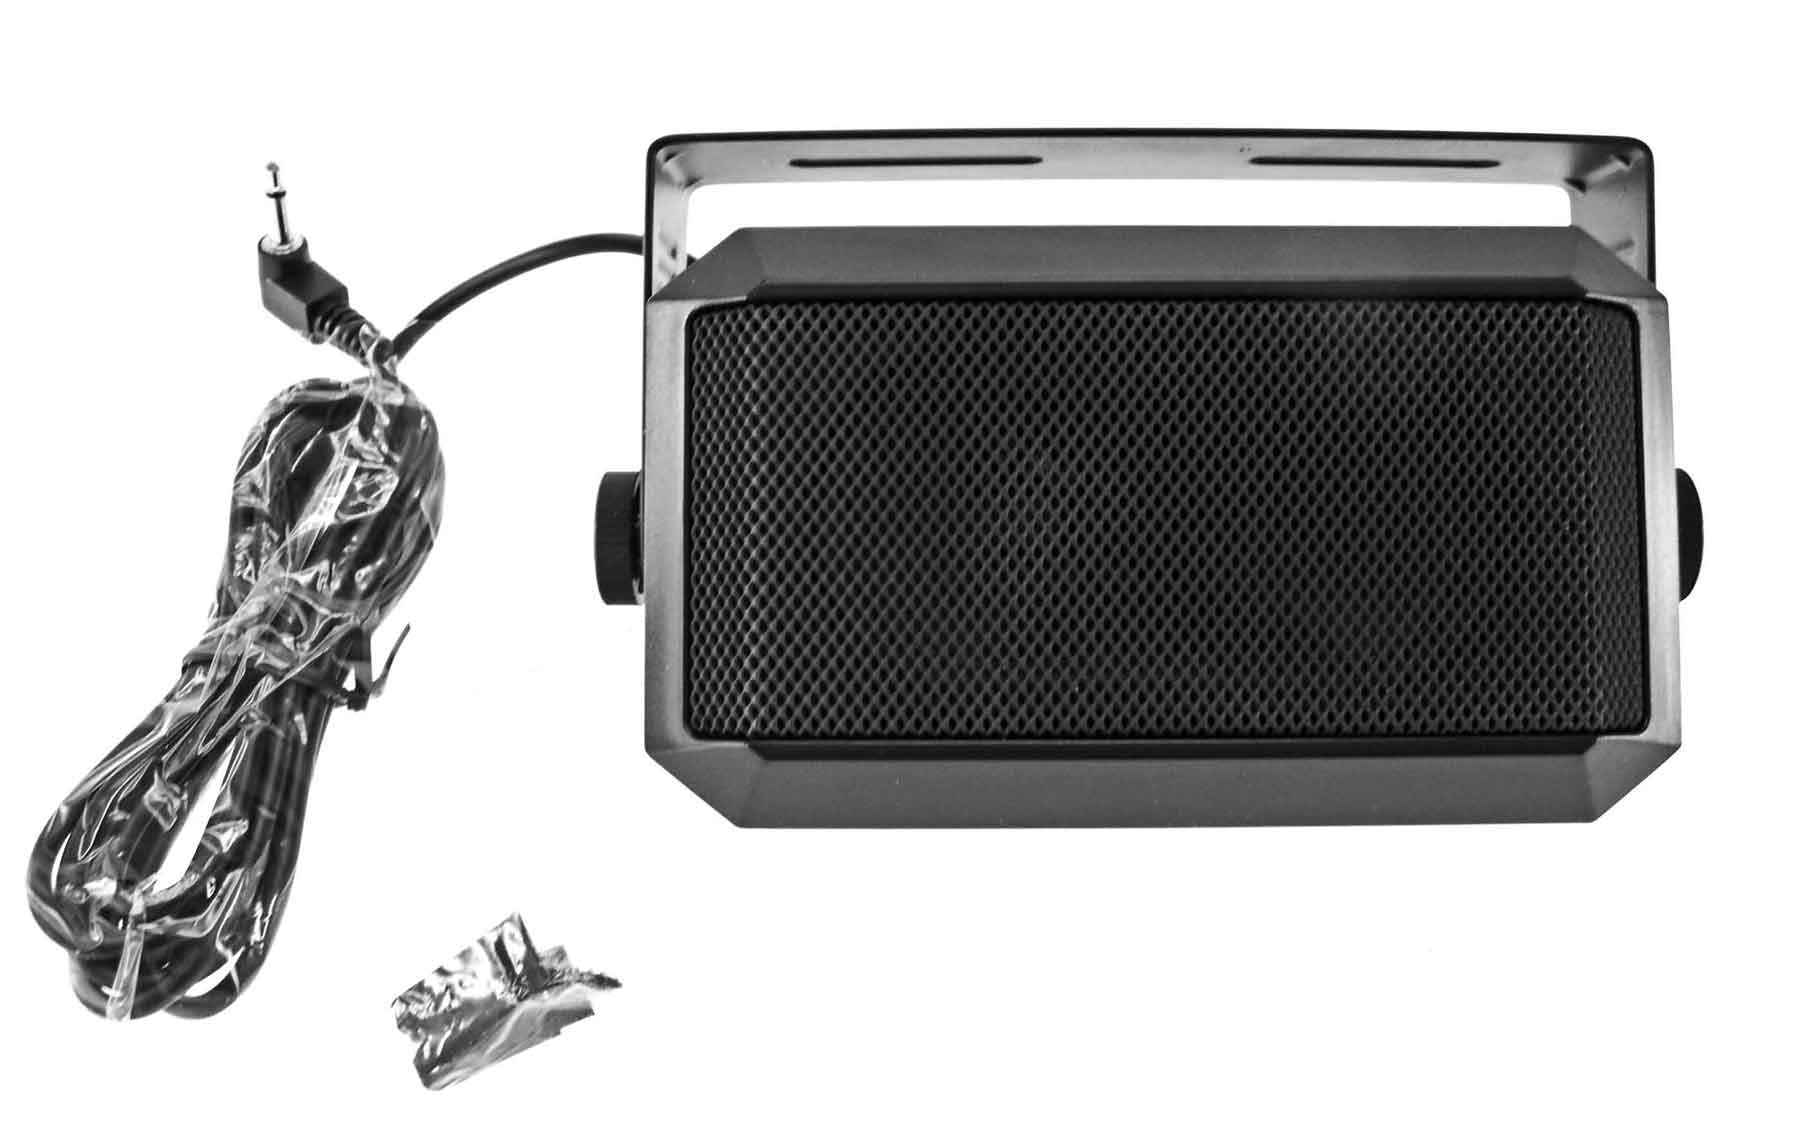 8 ohm External Speaker with mounting bracket & 3.5 mm mono plug